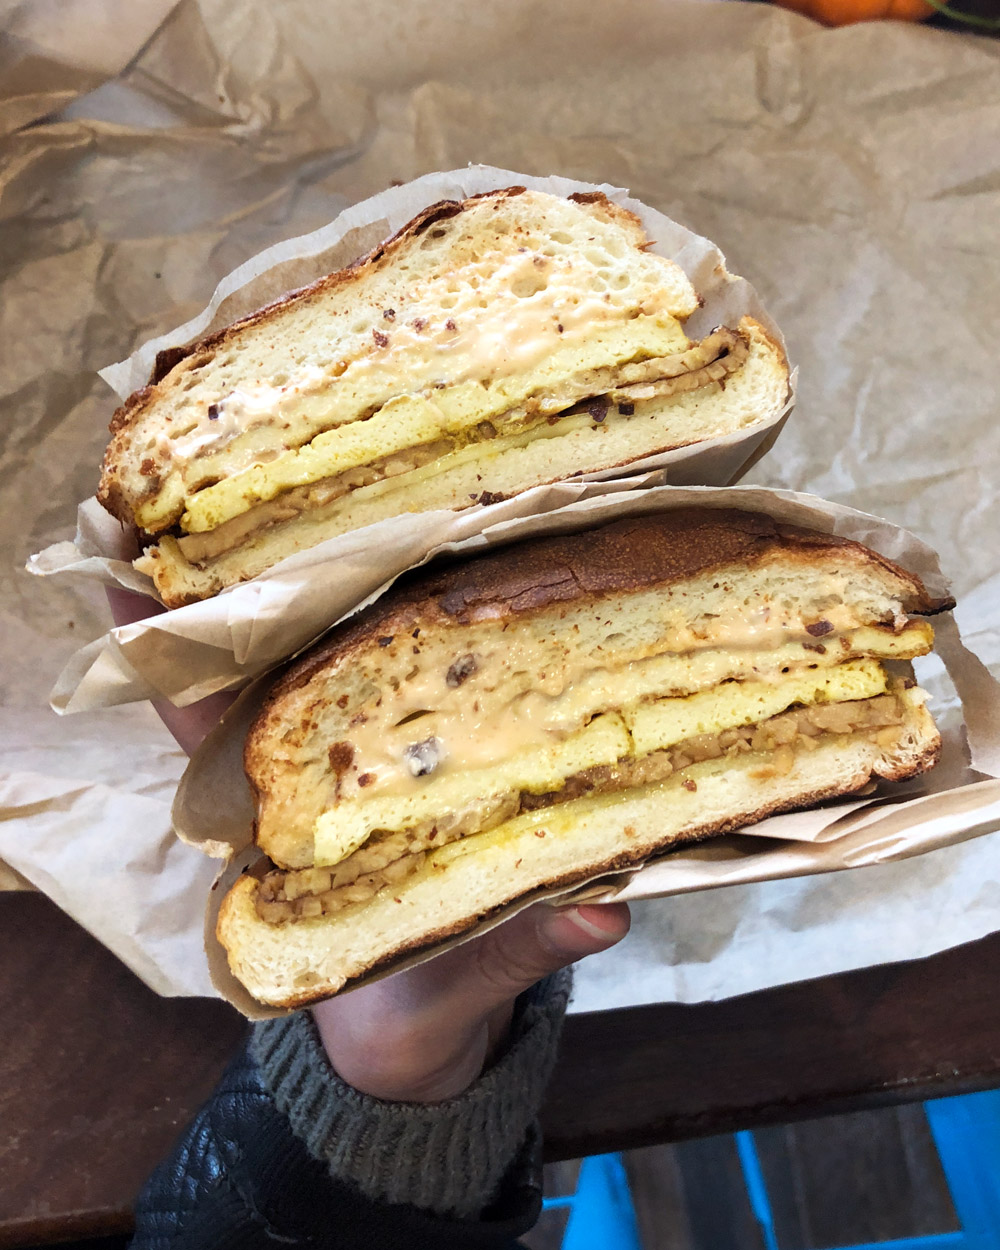 Orchard Grocery - The Bowery Breakfast Sandwich